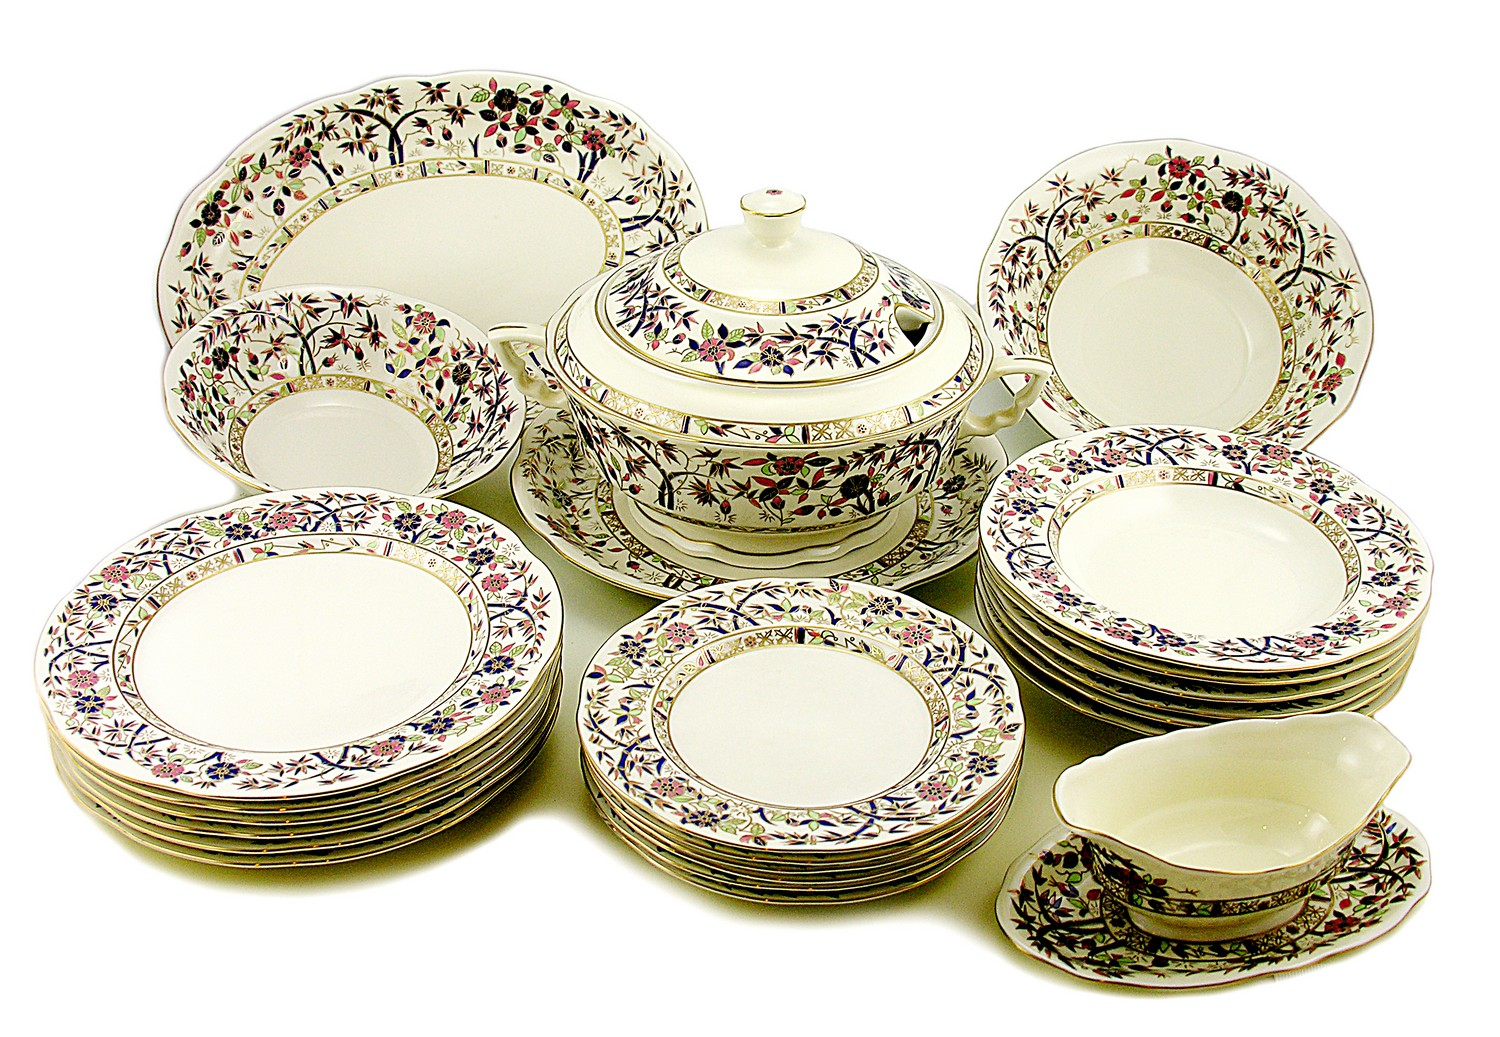 hungarian porcelain zsolnay bamboo decor dinner set for 6 ebay